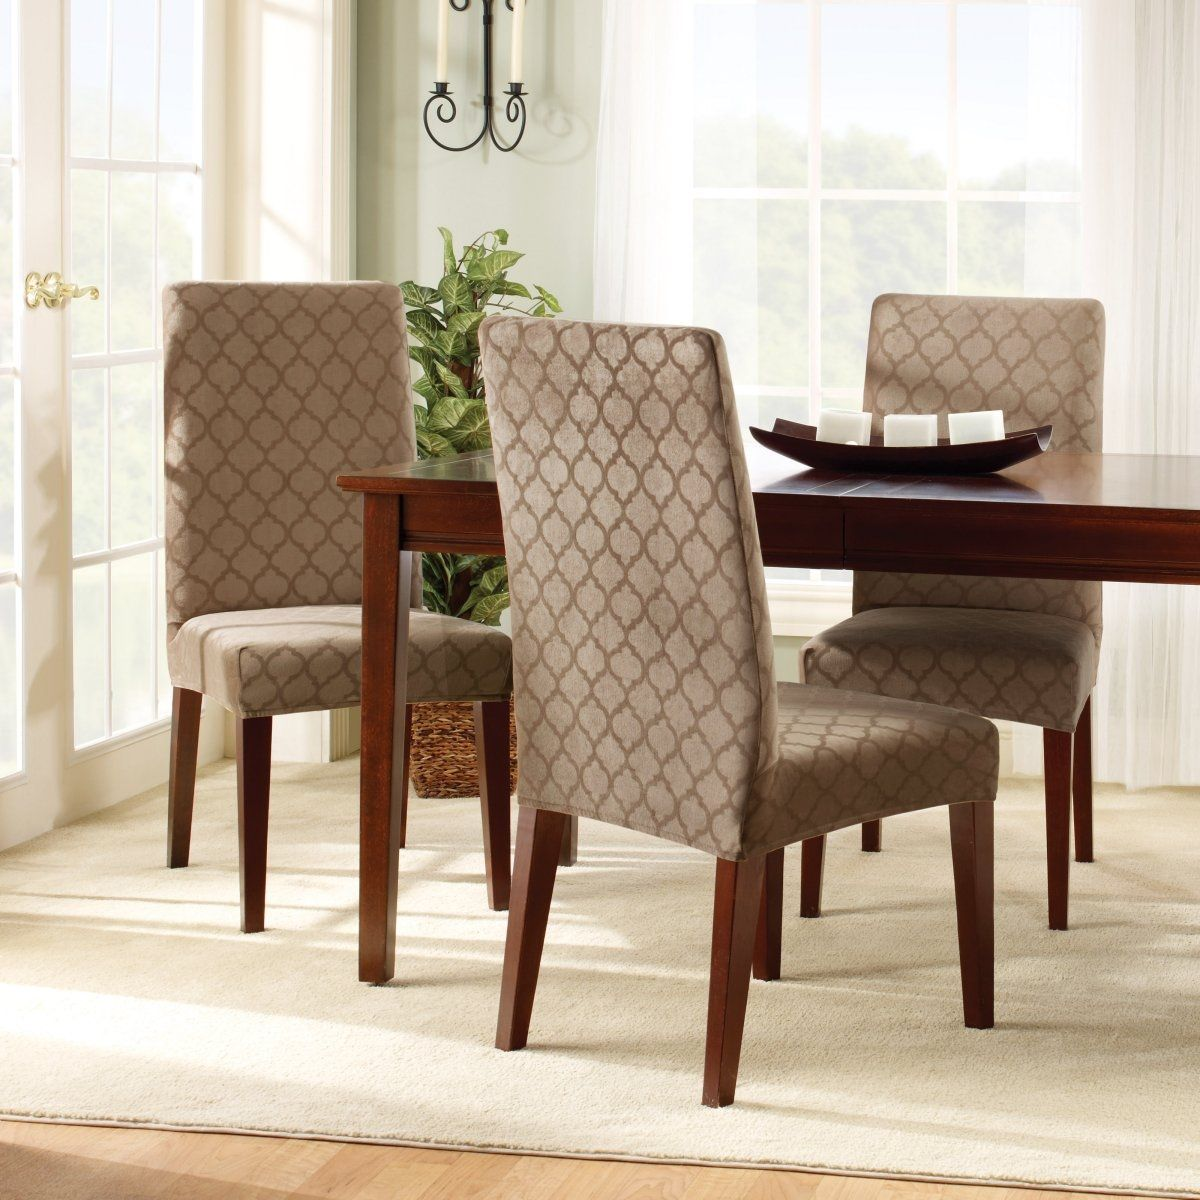 Material For Dining Room Chair Covers  Httpimages11 Enchanting Chairs Covers For Dining Room Design Inspiration